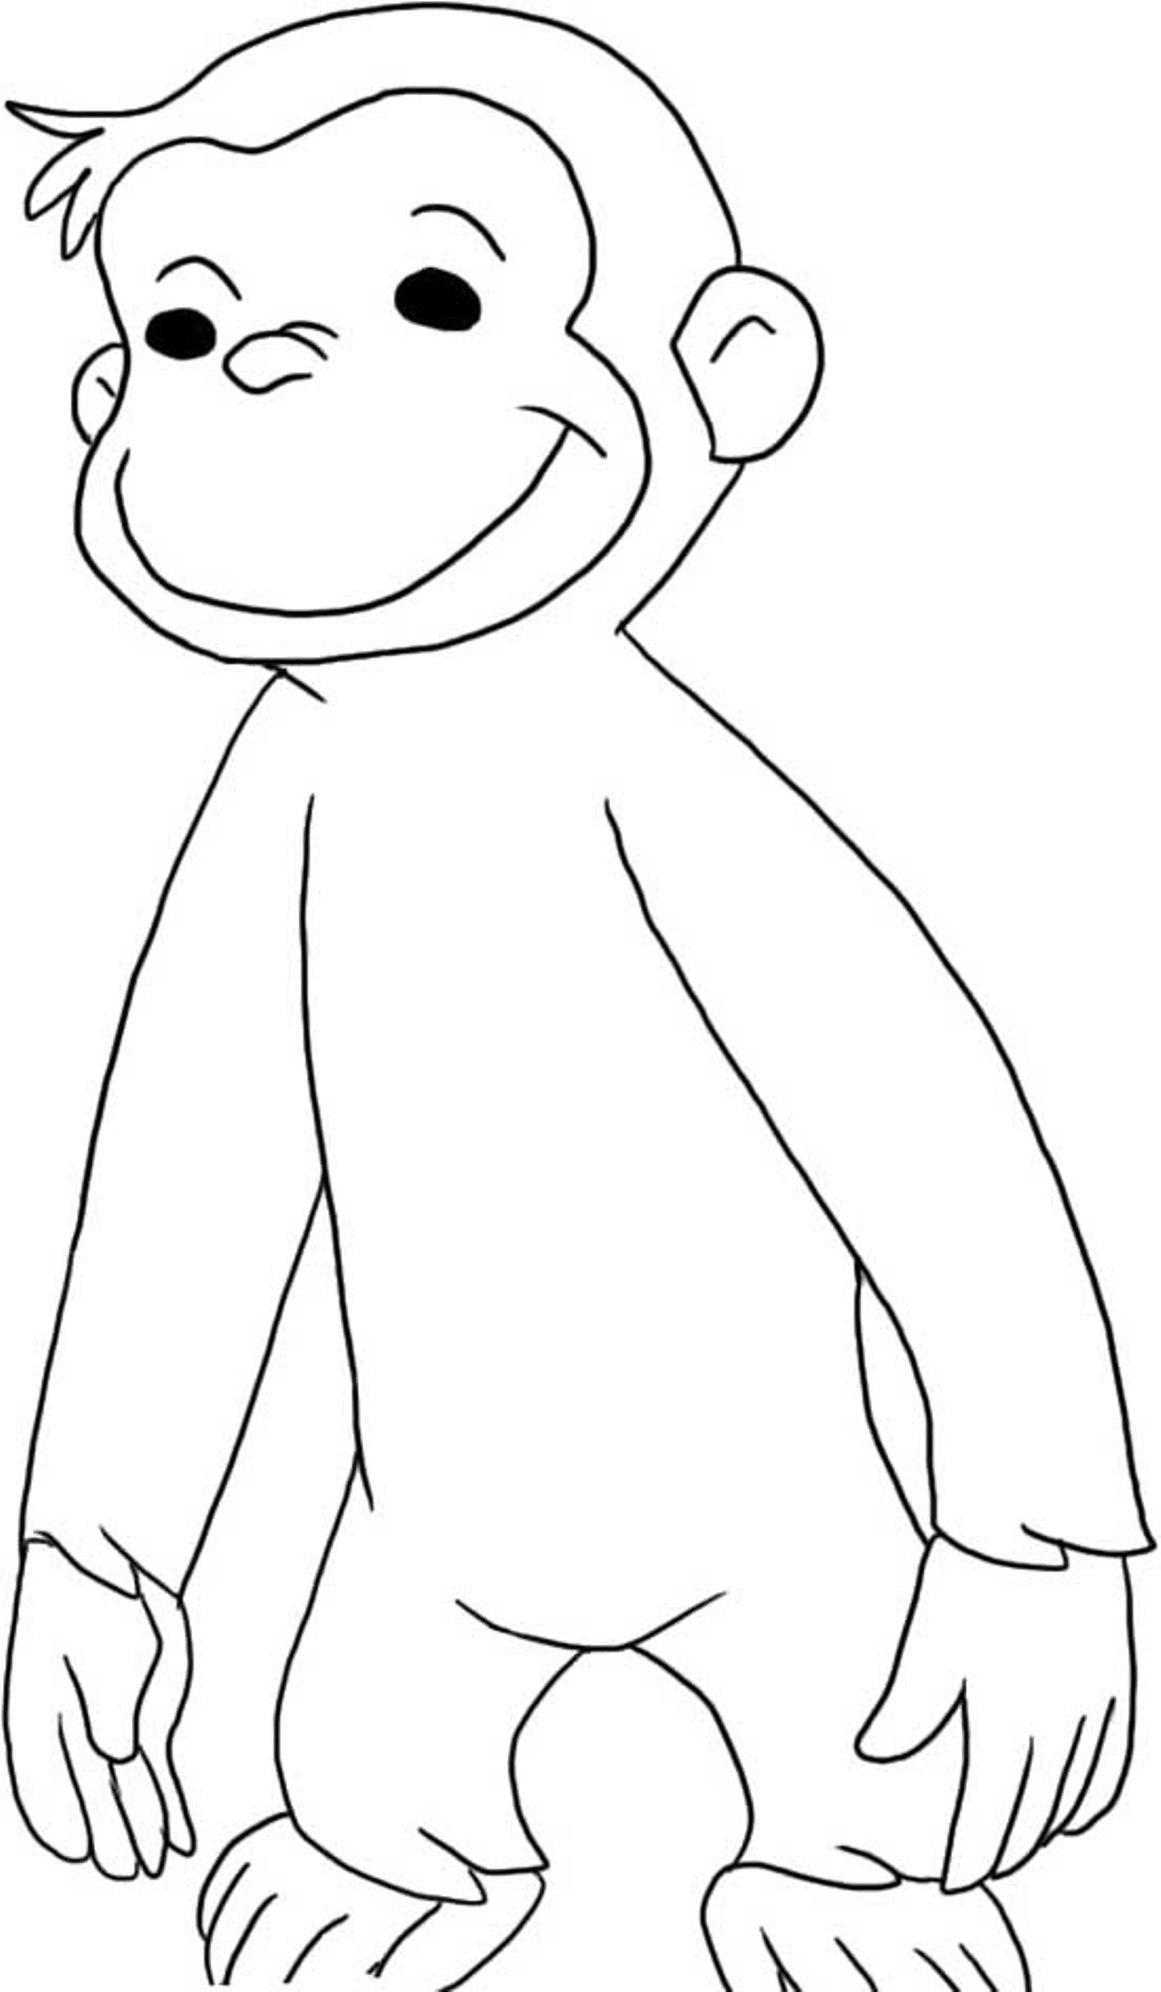 curious george coloring pages curious george coloring pages to download and print for free george coloring pages curious